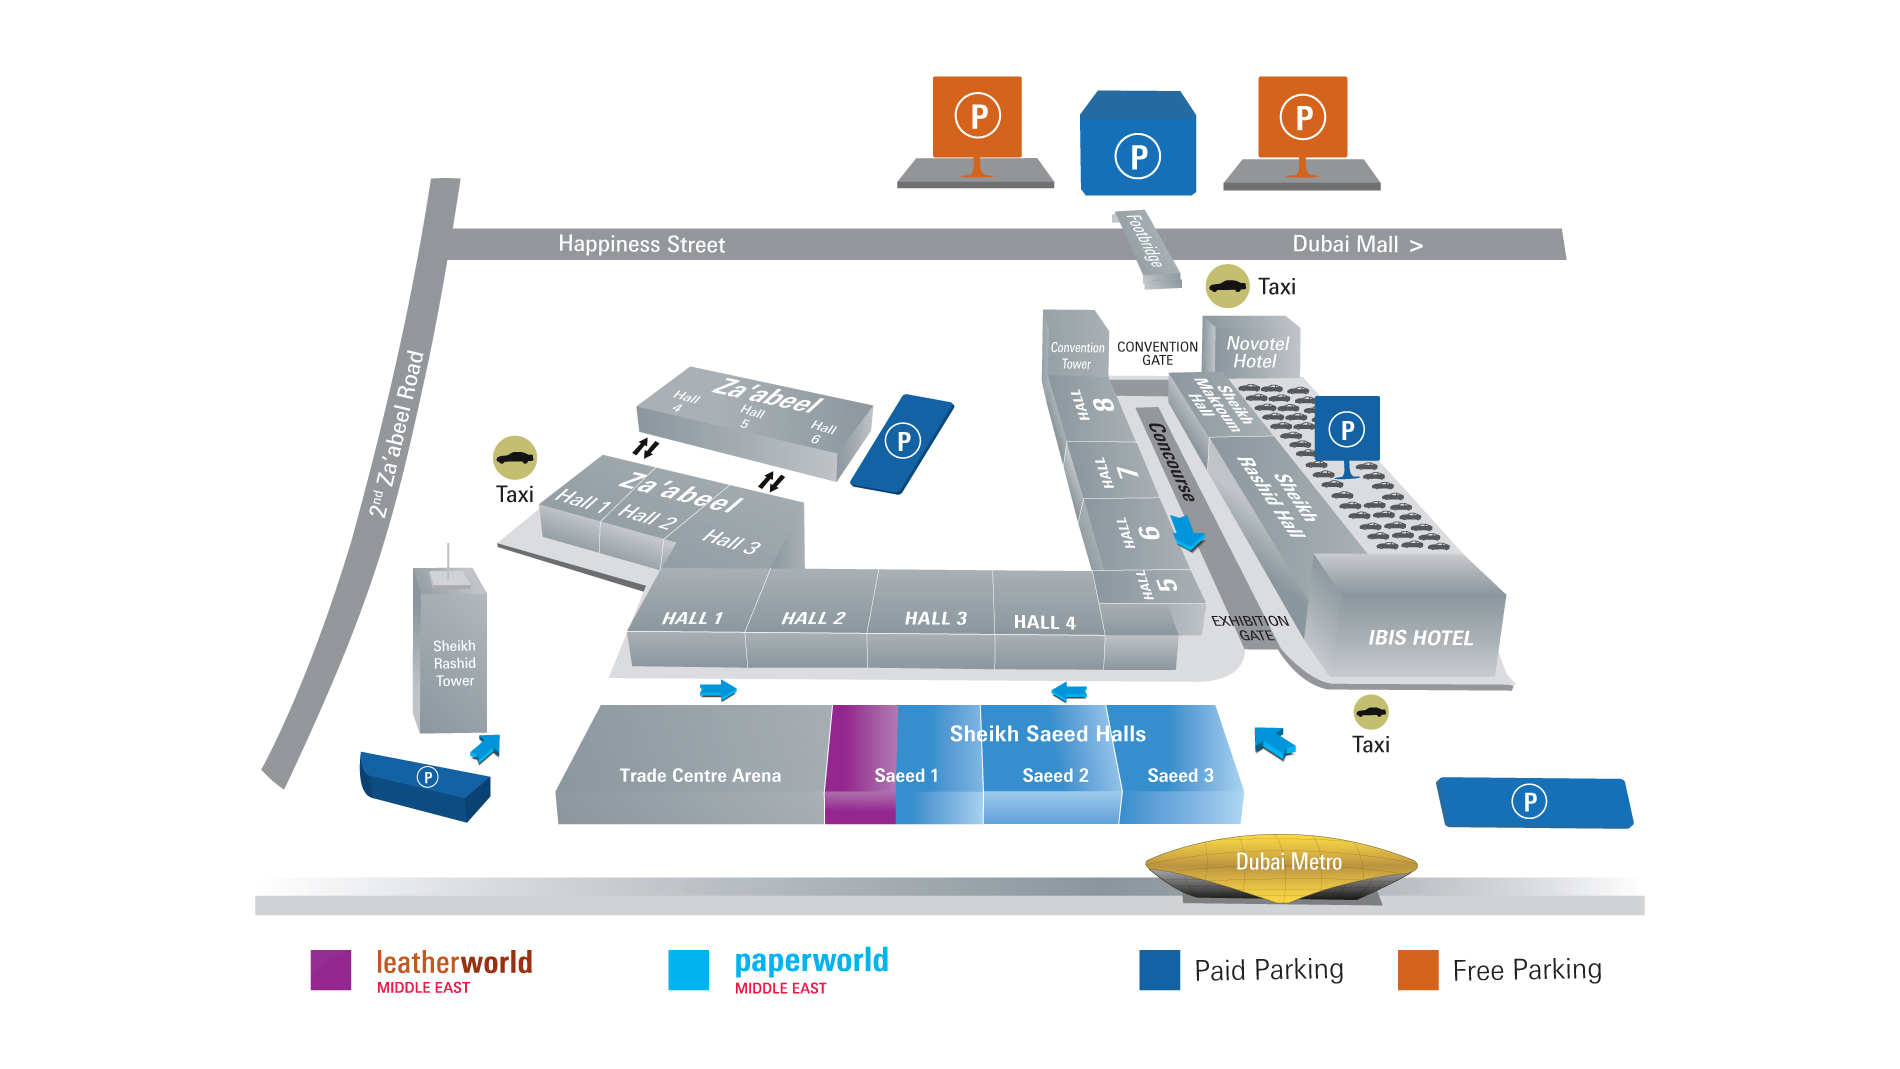 Venue Map Paperworld Middle East